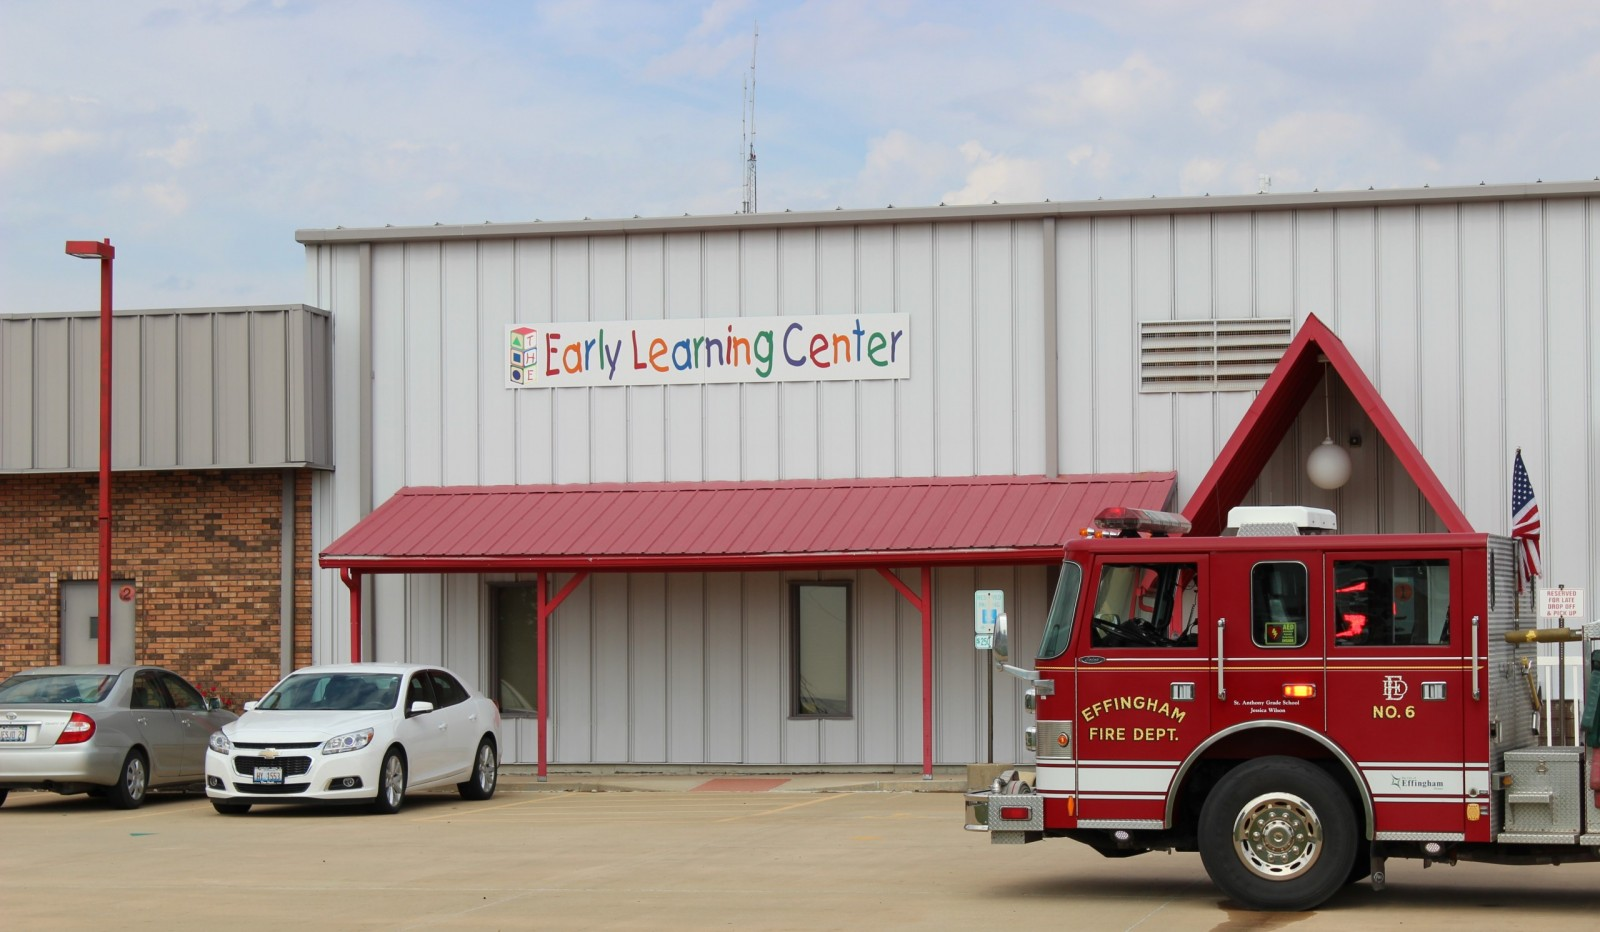 The Effingham Fire Department was called to the Early Learning Center Thursday after a furnace malfunctioned.  Students missed approximately 30 minutes of class.